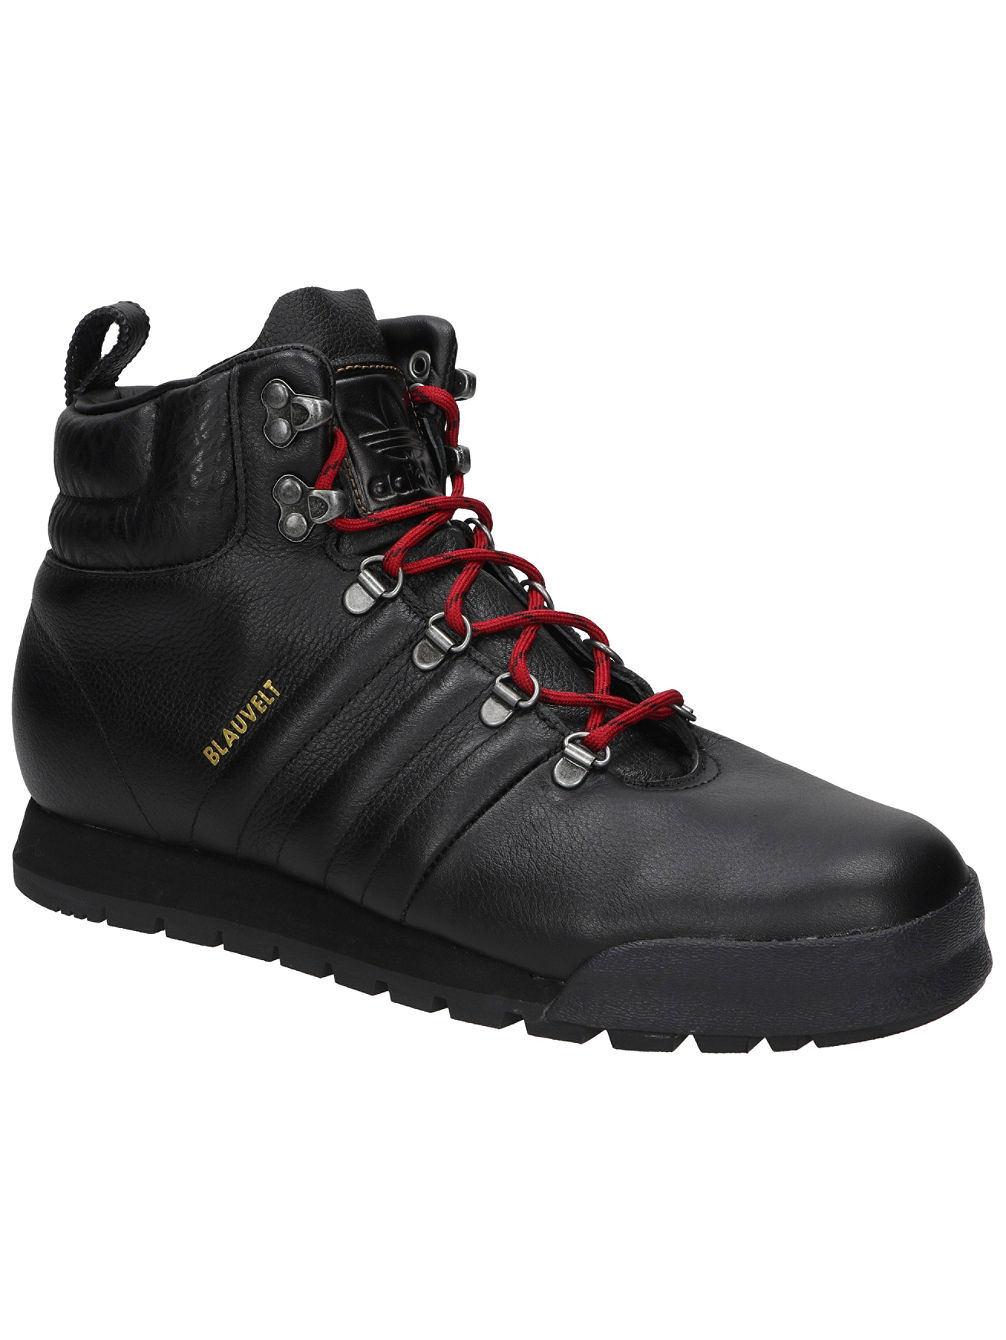 Jake Blauvelt Boot Winterschuhe